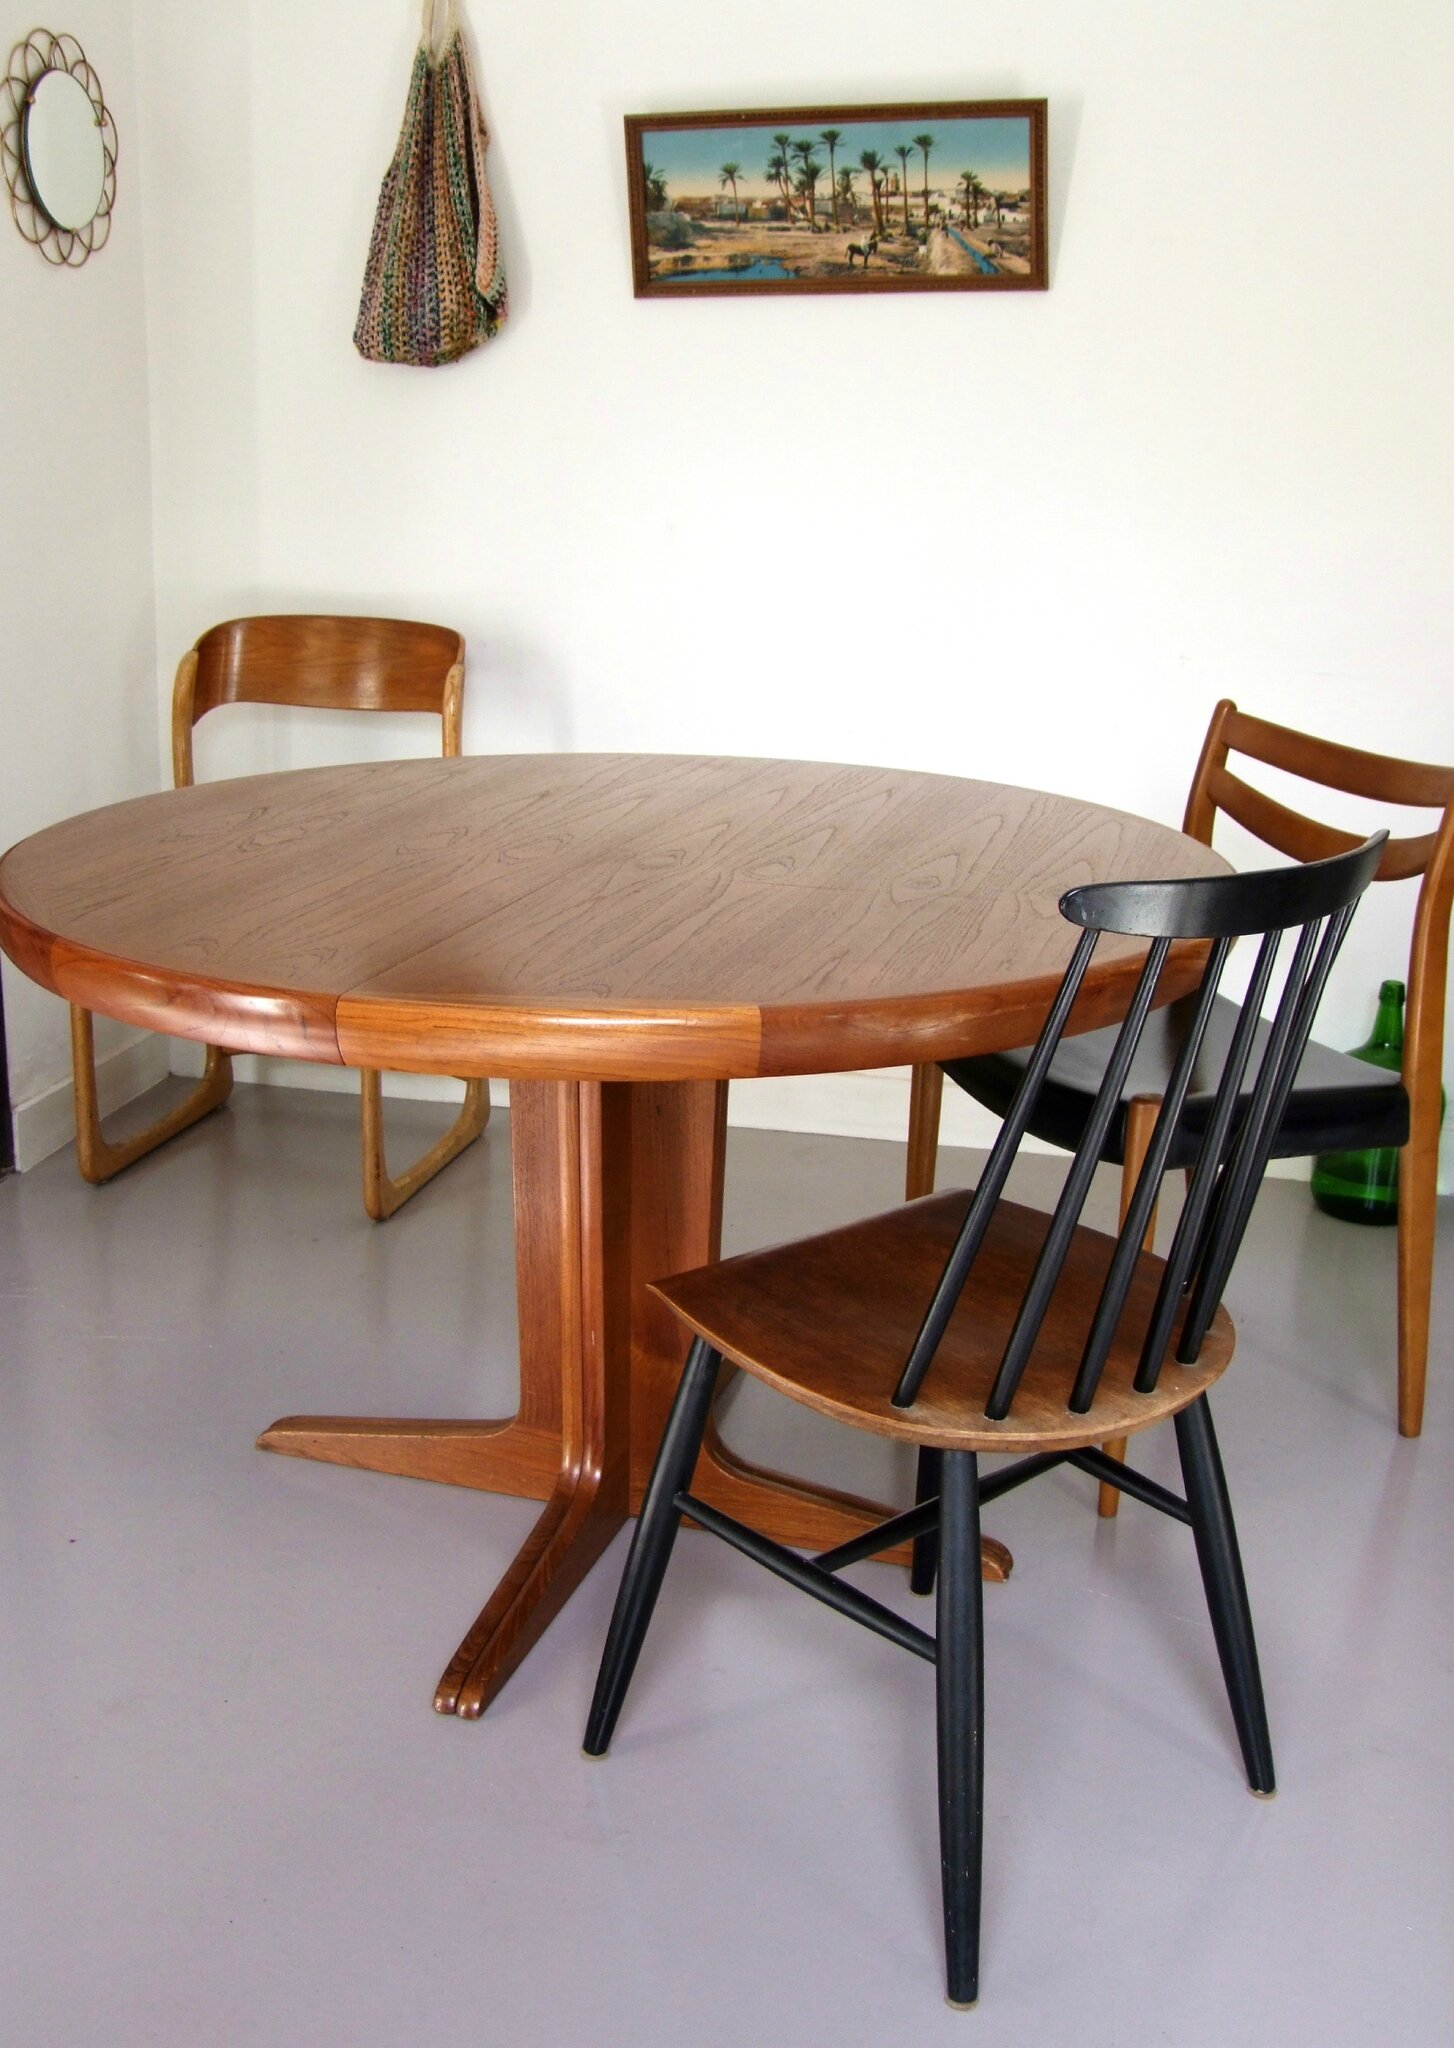 TABLE RONDE EXTENSIBLE SCANDINAVE Kofod  MEUBLES VINTAGE PATALUNA Chinés, dé -> Table Ronde Scandinave